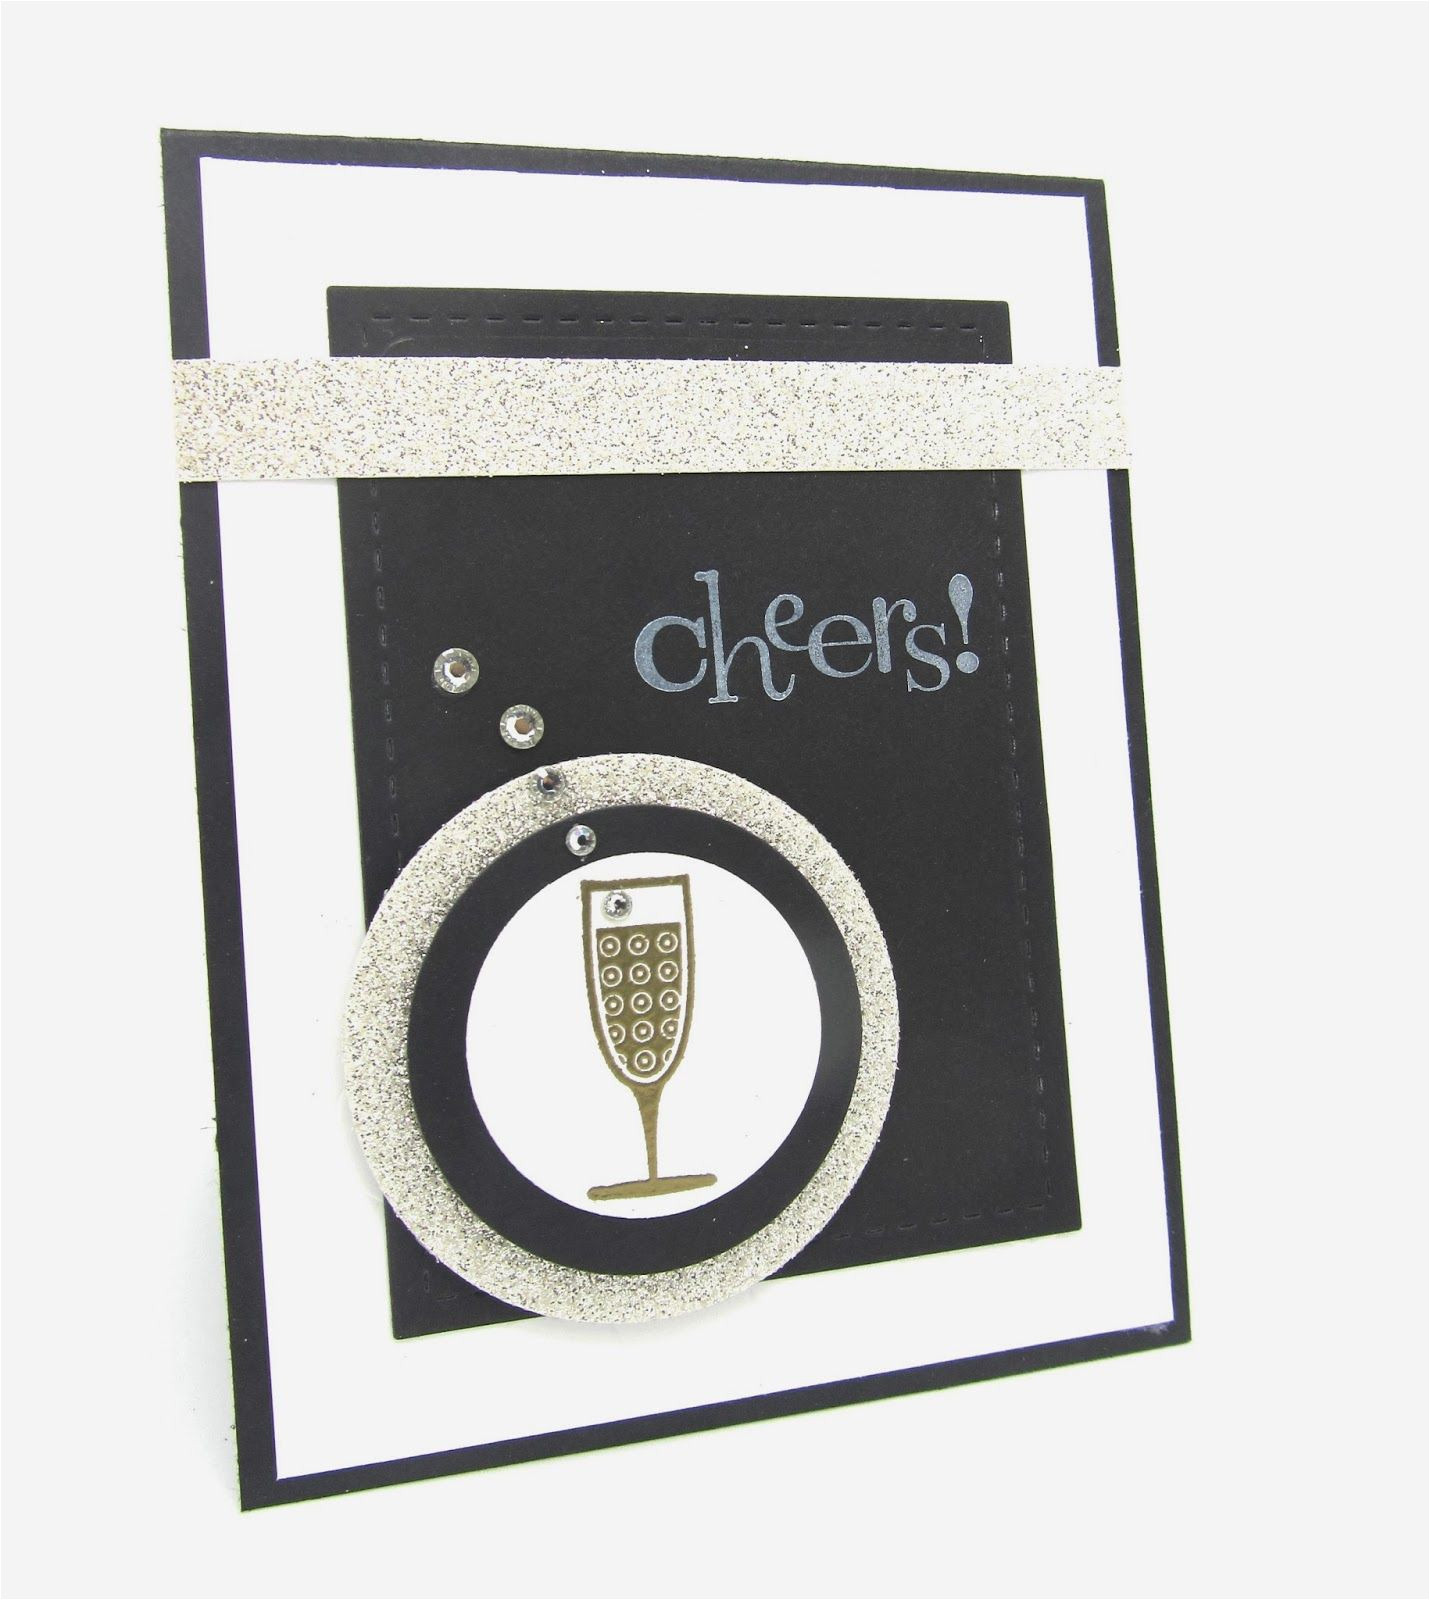 New Year Greeting Card Handmade Happy New Years with Cheers with Images Cheers Card